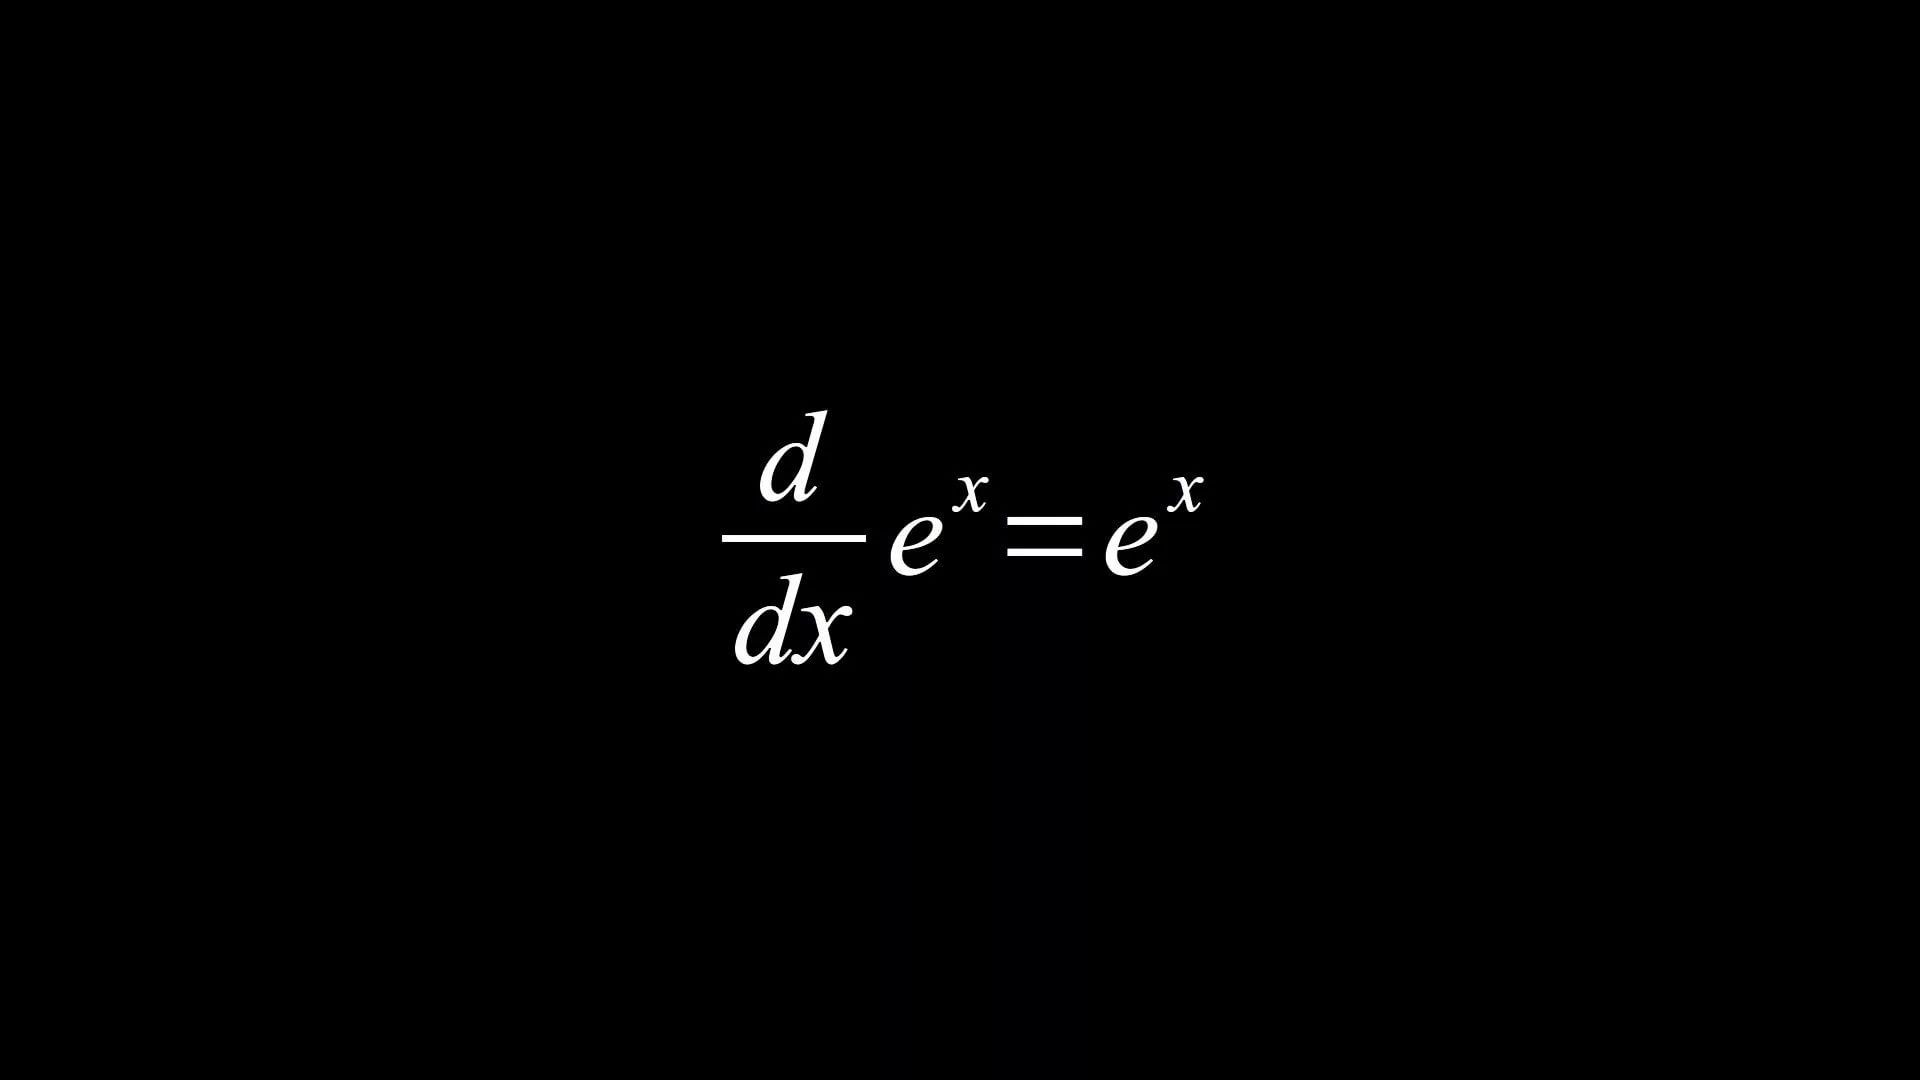 Math Equation wallpaper picture hd